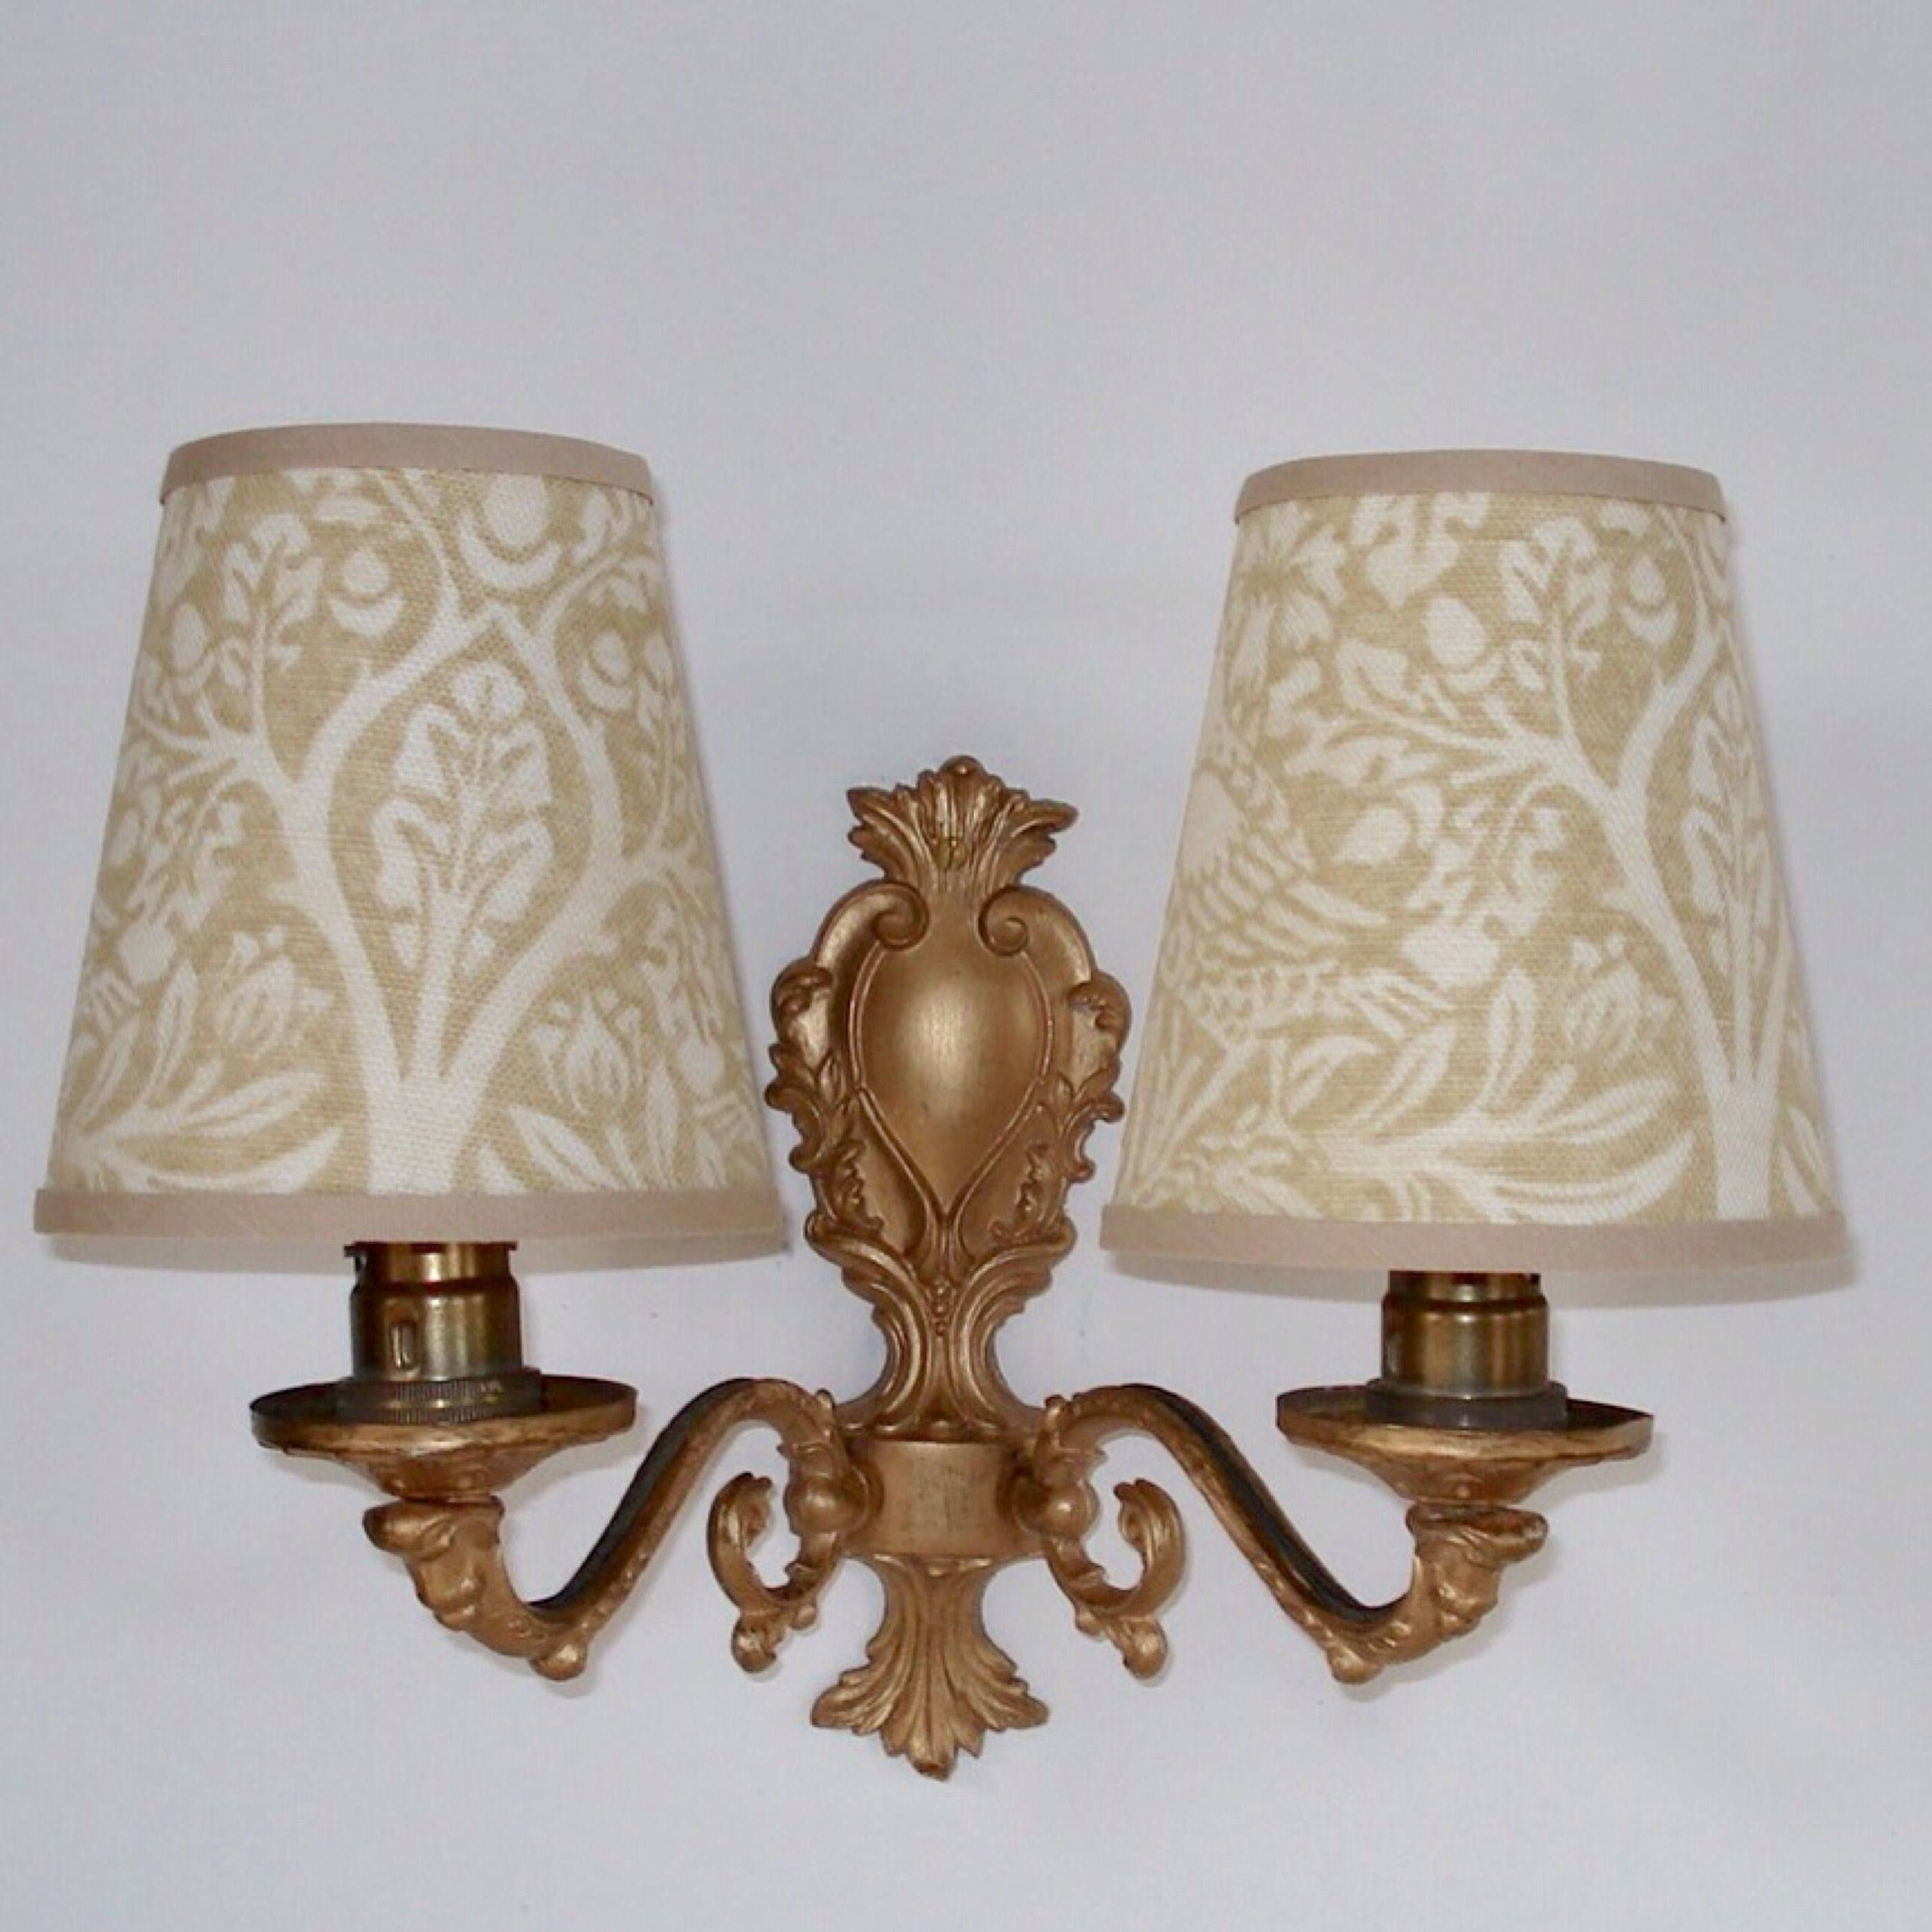 William Morris Brer Rabbit Small Handmade Candle Clip Lampshade For Wall Lights Chandeliers By Lampshadelivi Wall Lights Handmade Candles Chandelier Lighting